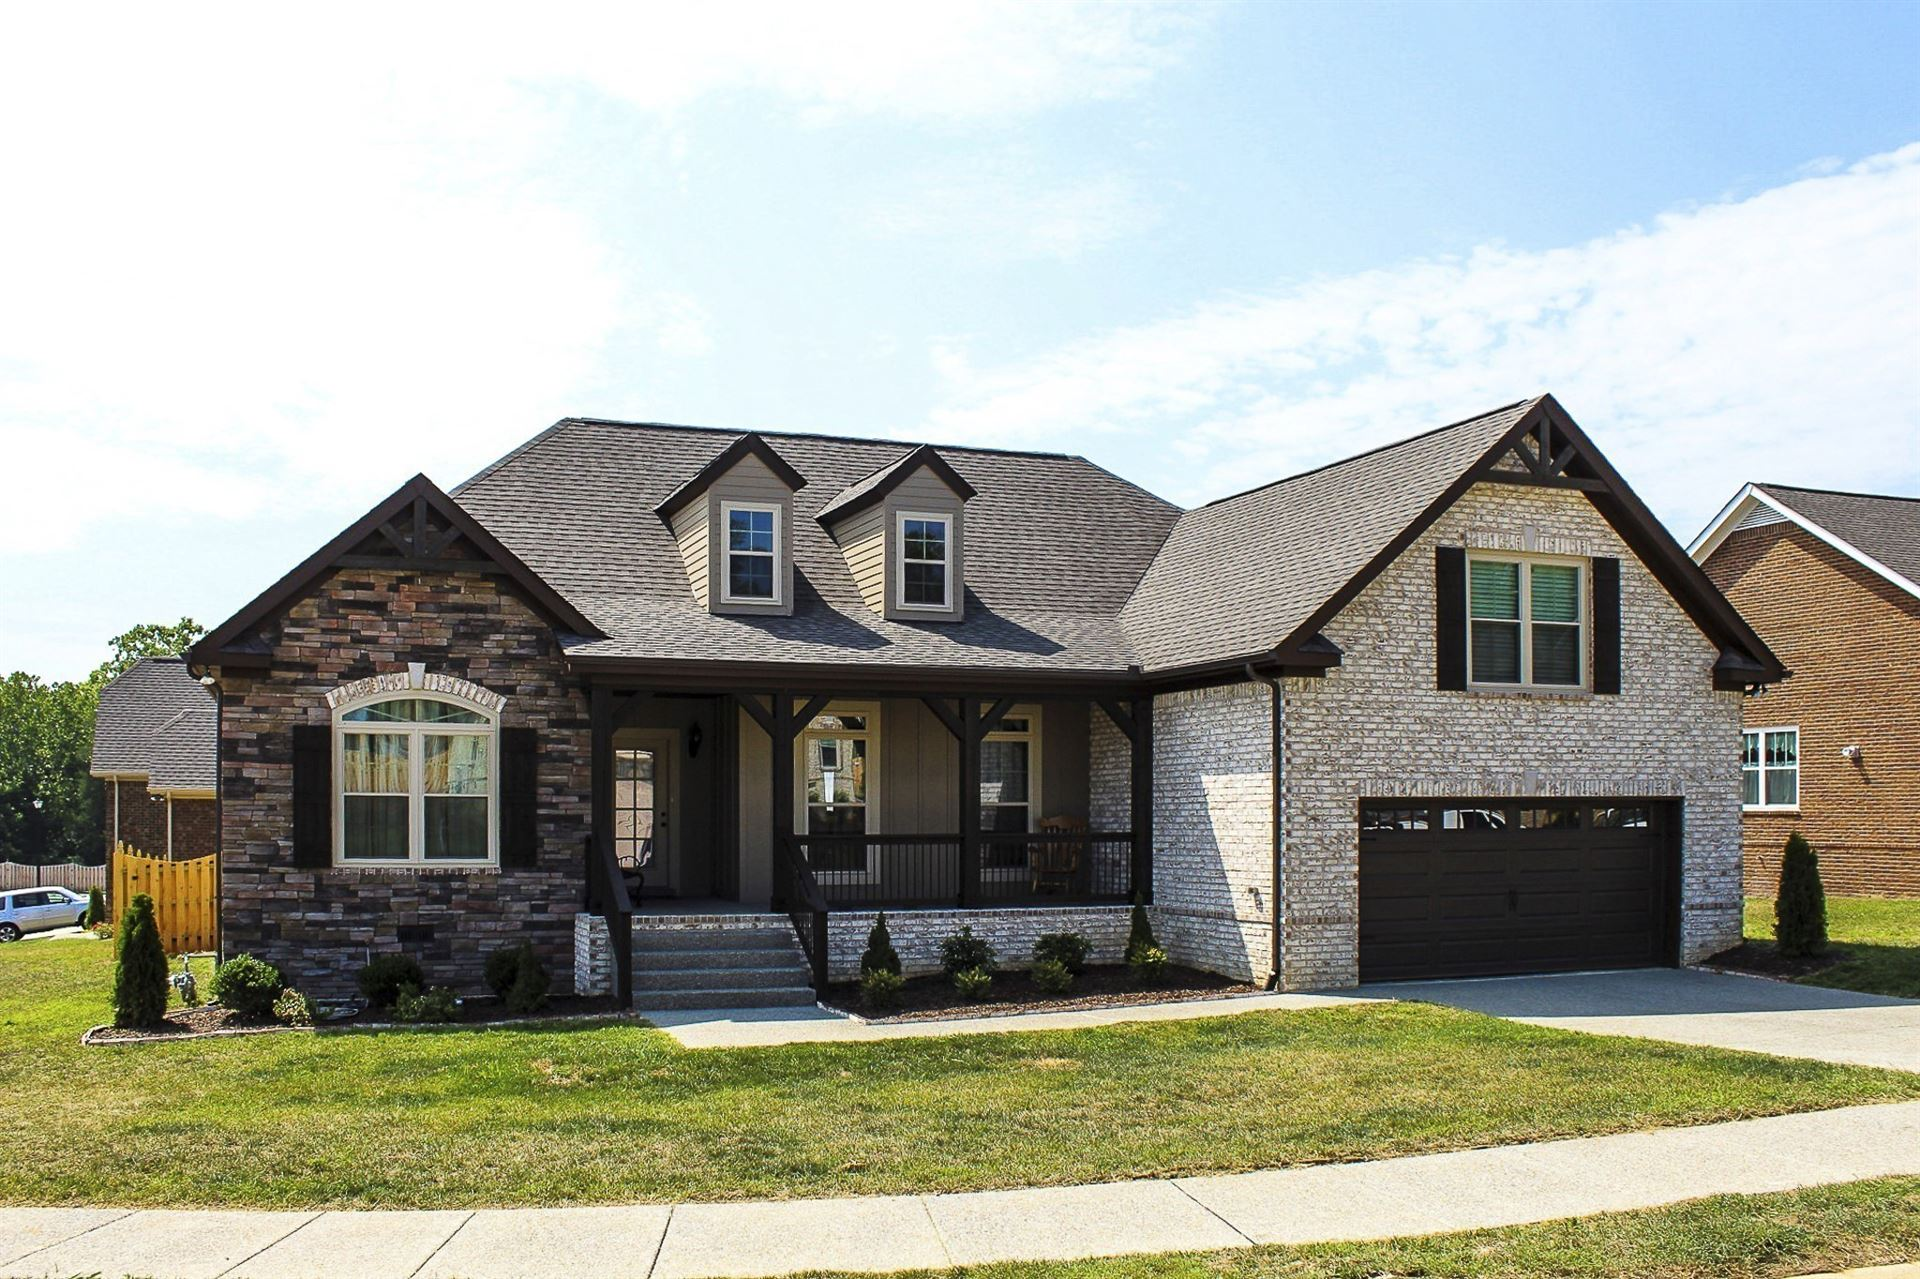 9035 Safe Haven Place Lot 547, Spring Hill, TN 37174 - MLS#: 2202390